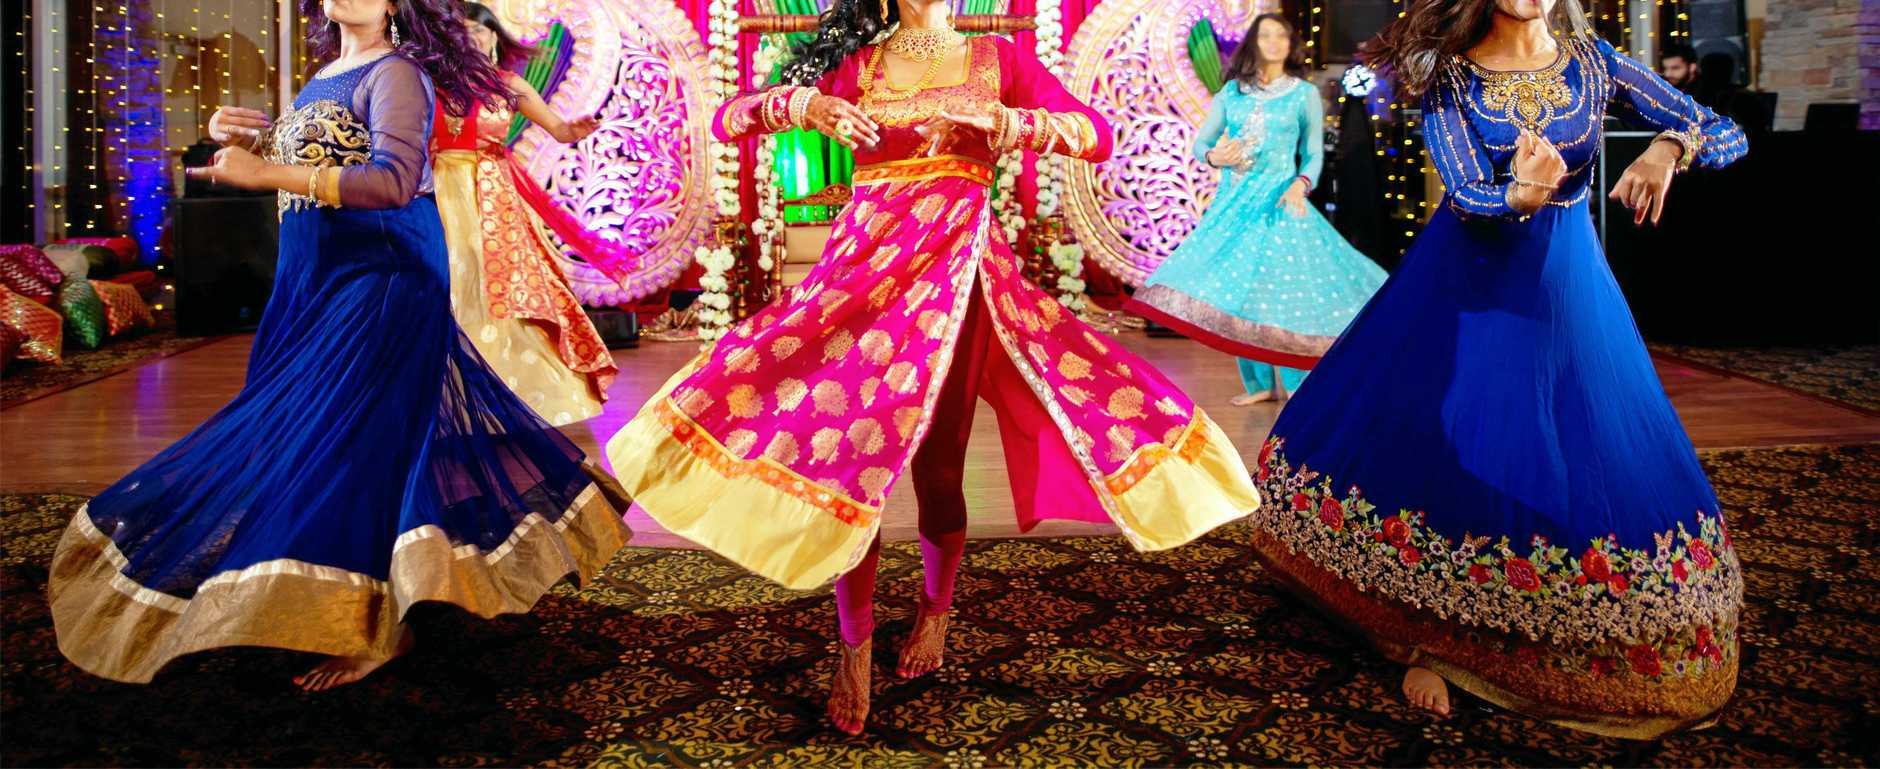 UNIQUE TRAVEL: Experience all the glamour and love a traditional Indian wedding.